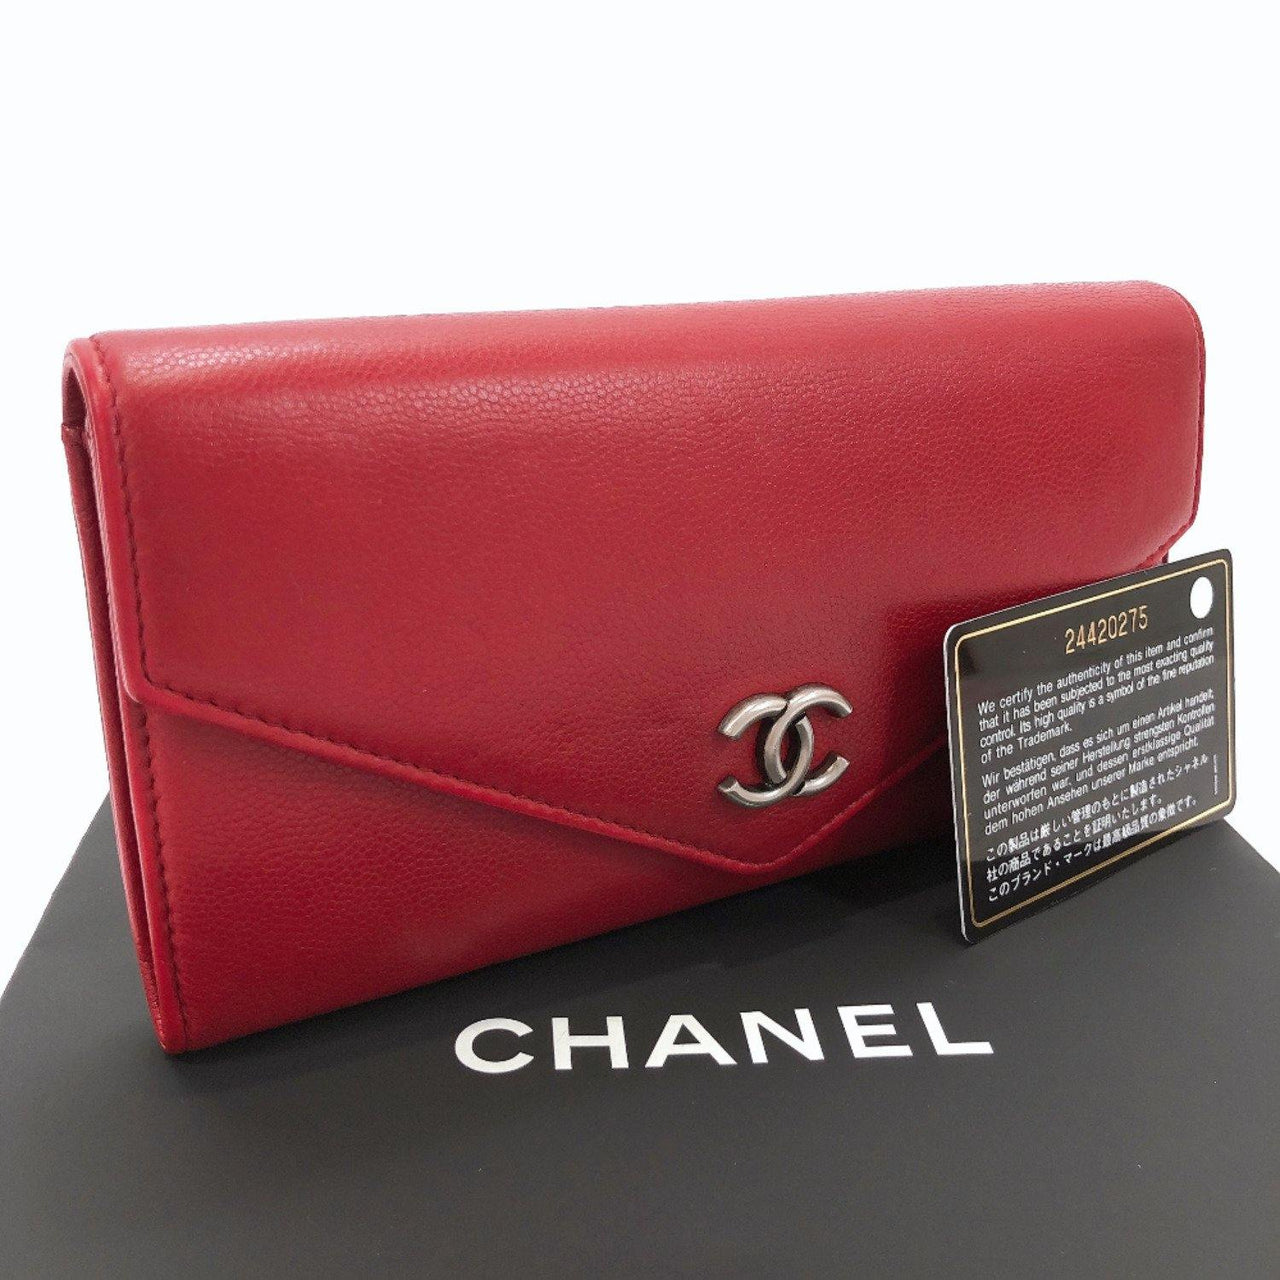 CHANEL purse leather Red Women Used - JP-BRANDS.com